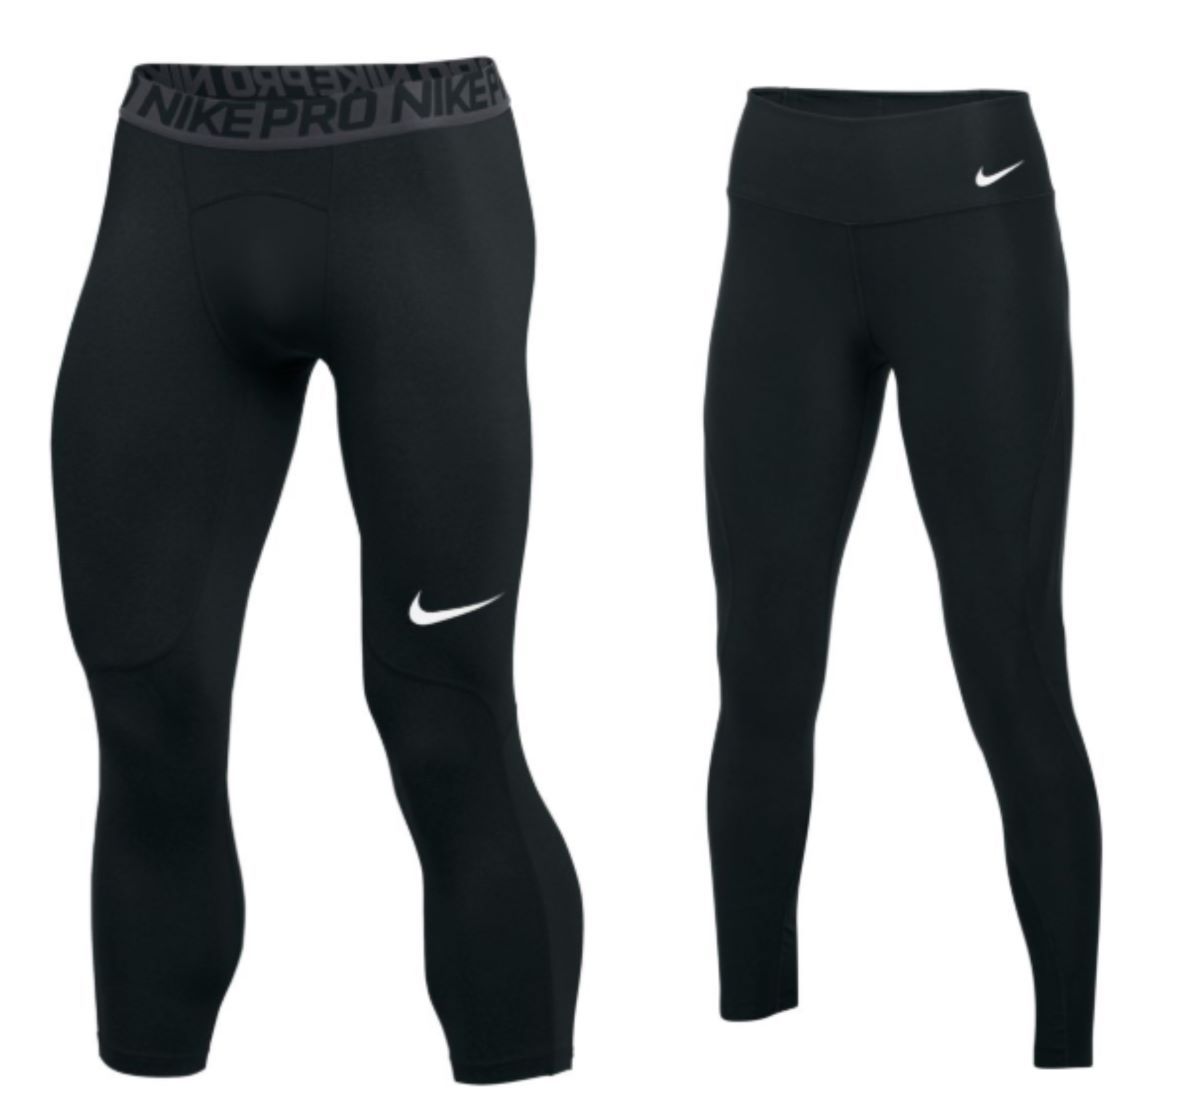 Compression Athletic Tights for Men and Women